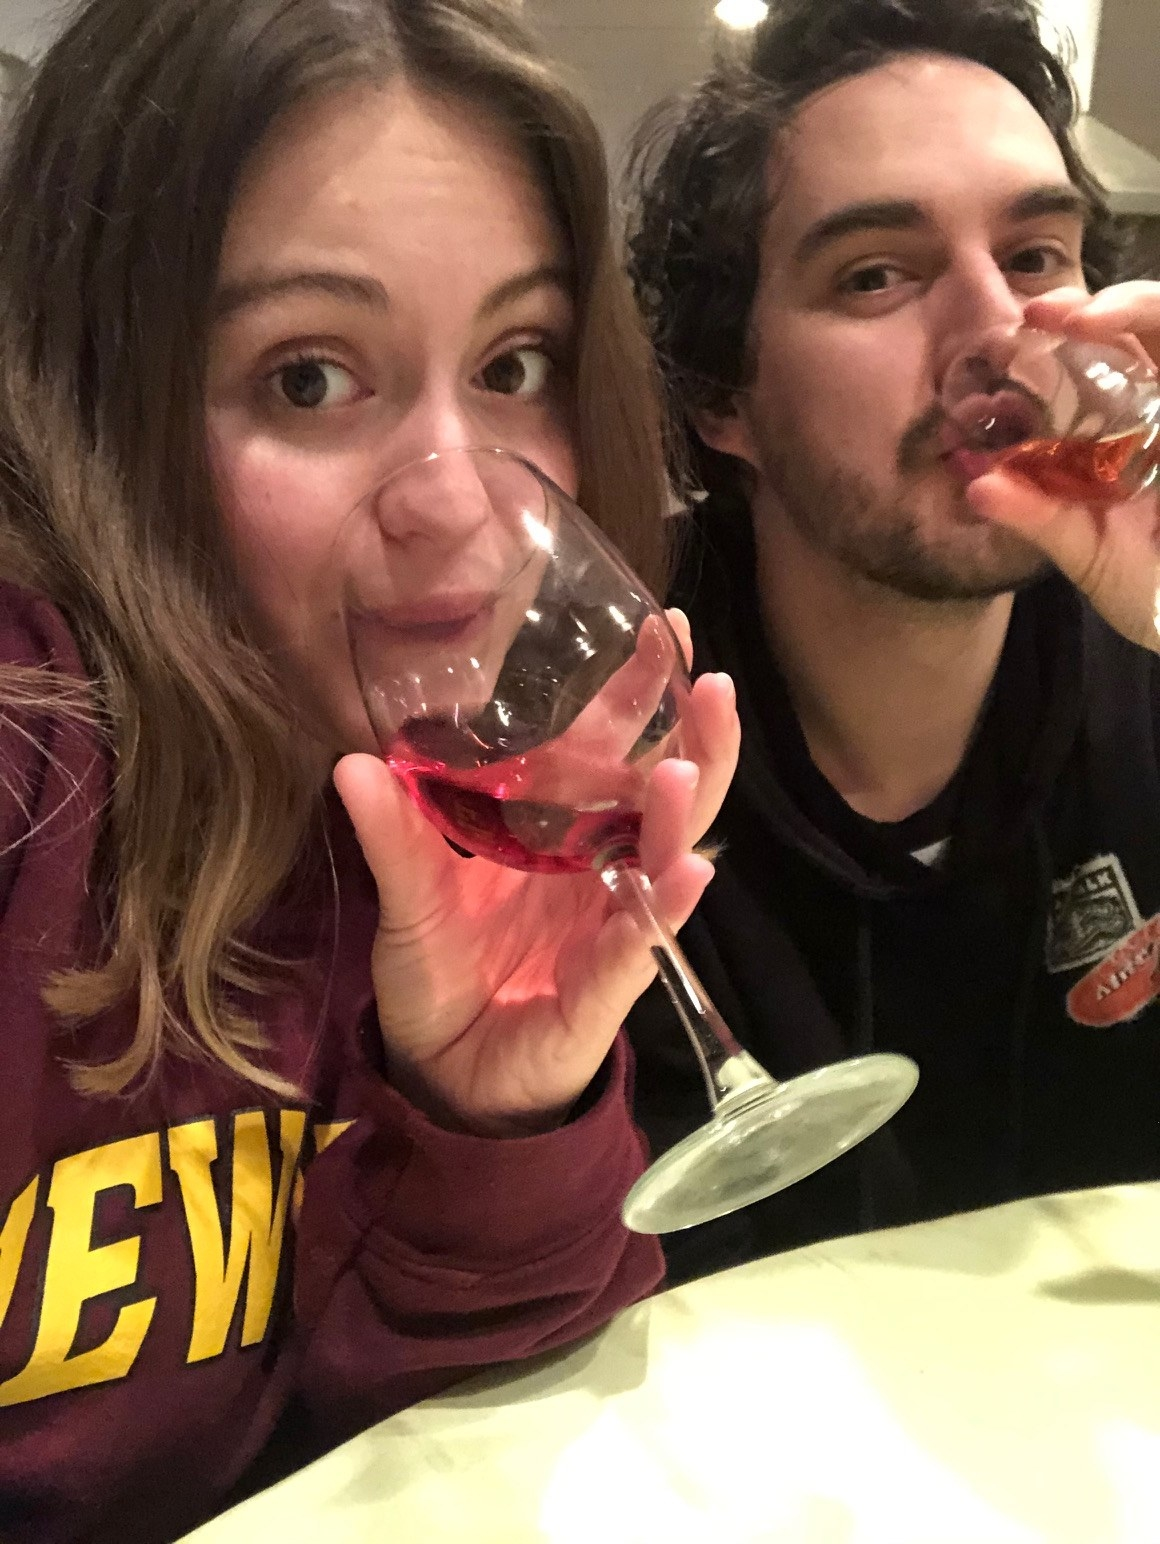 Woman and man sipping wine